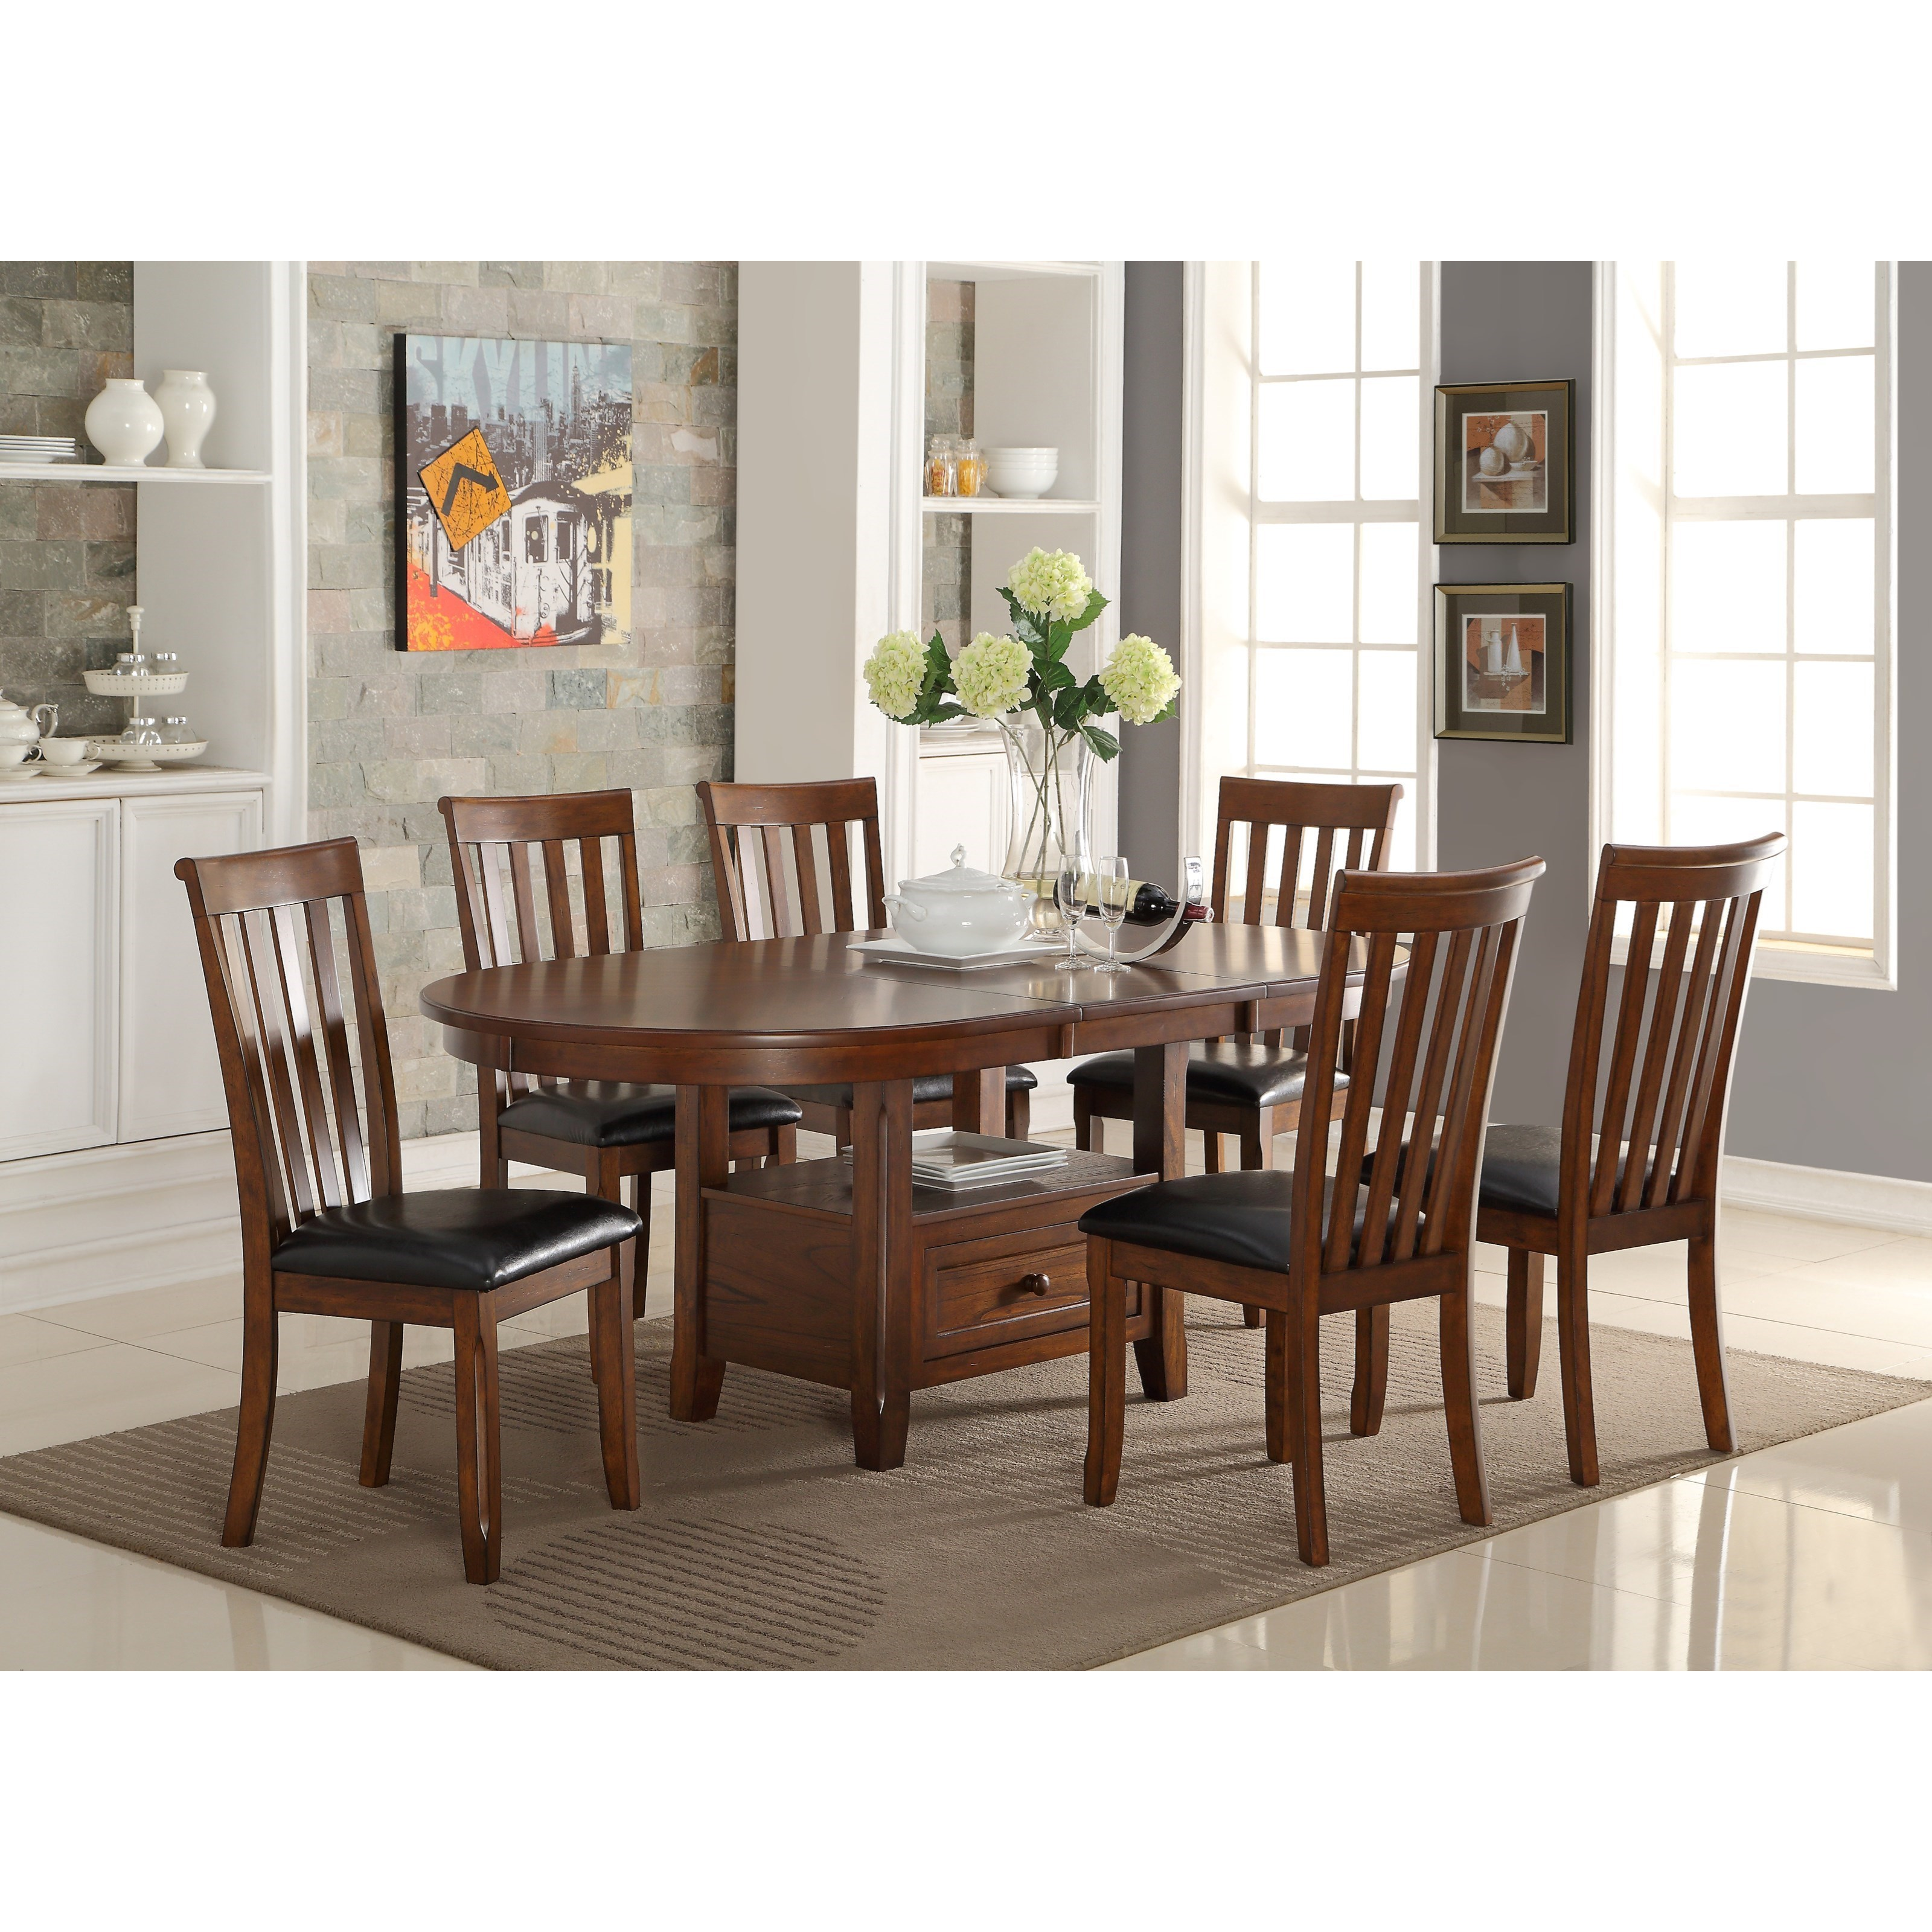 Beau New Classic Wilson7 Piece Dining Table Set